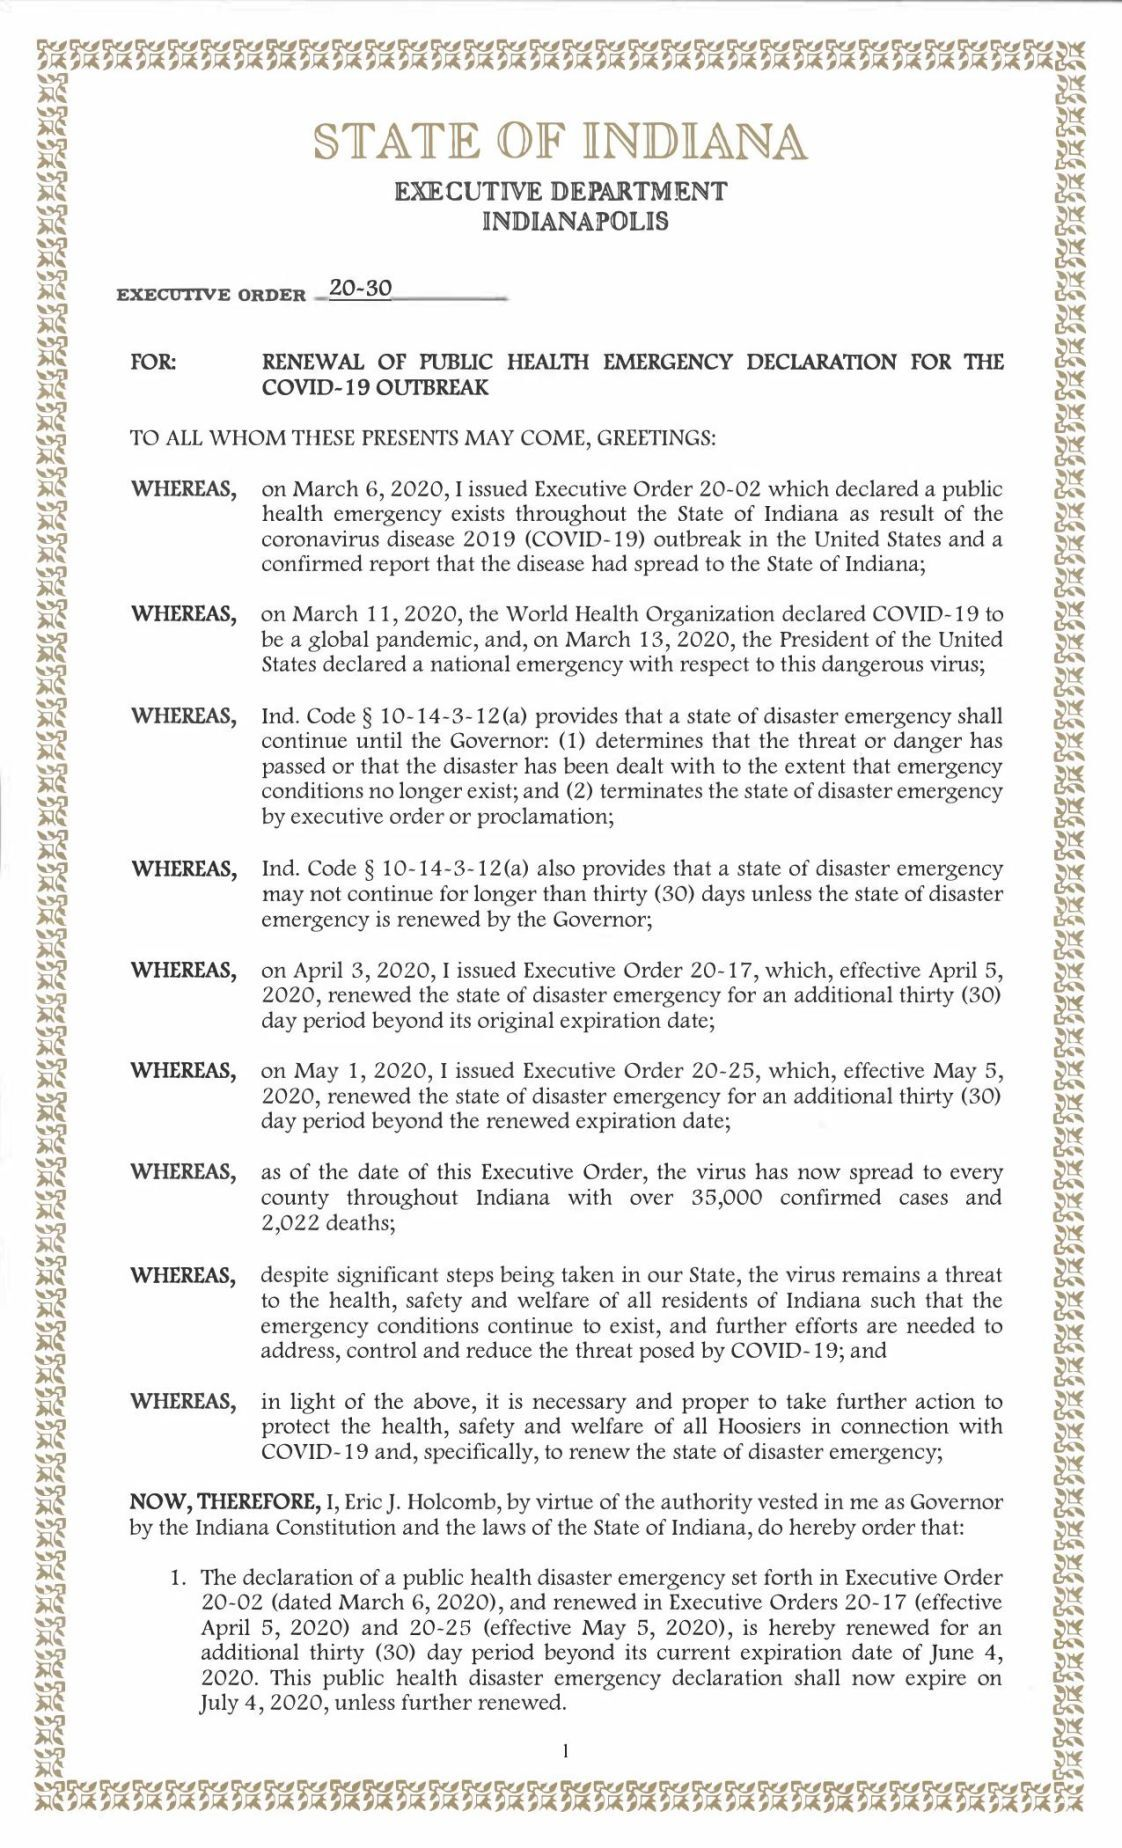 Gov. Eric Holcomb Executive Order 20-30 extending COVID-19 emergency until July 4